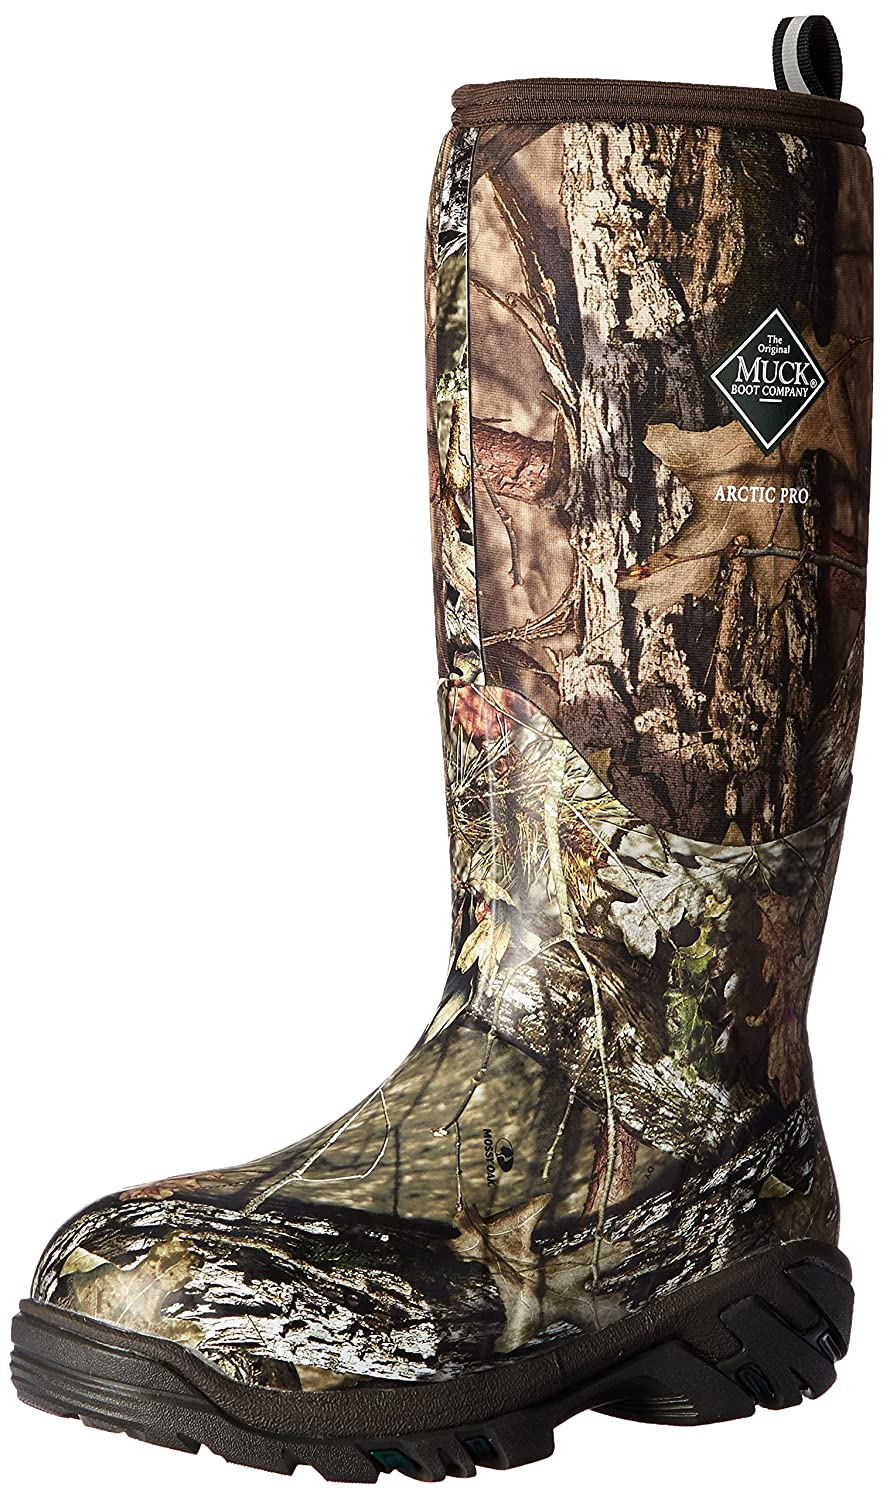 Muck Arctic Pro Tall Rubber Insulated Extreme Conditions Men's Hunting Boots Muck Boot Arctic Pro-M